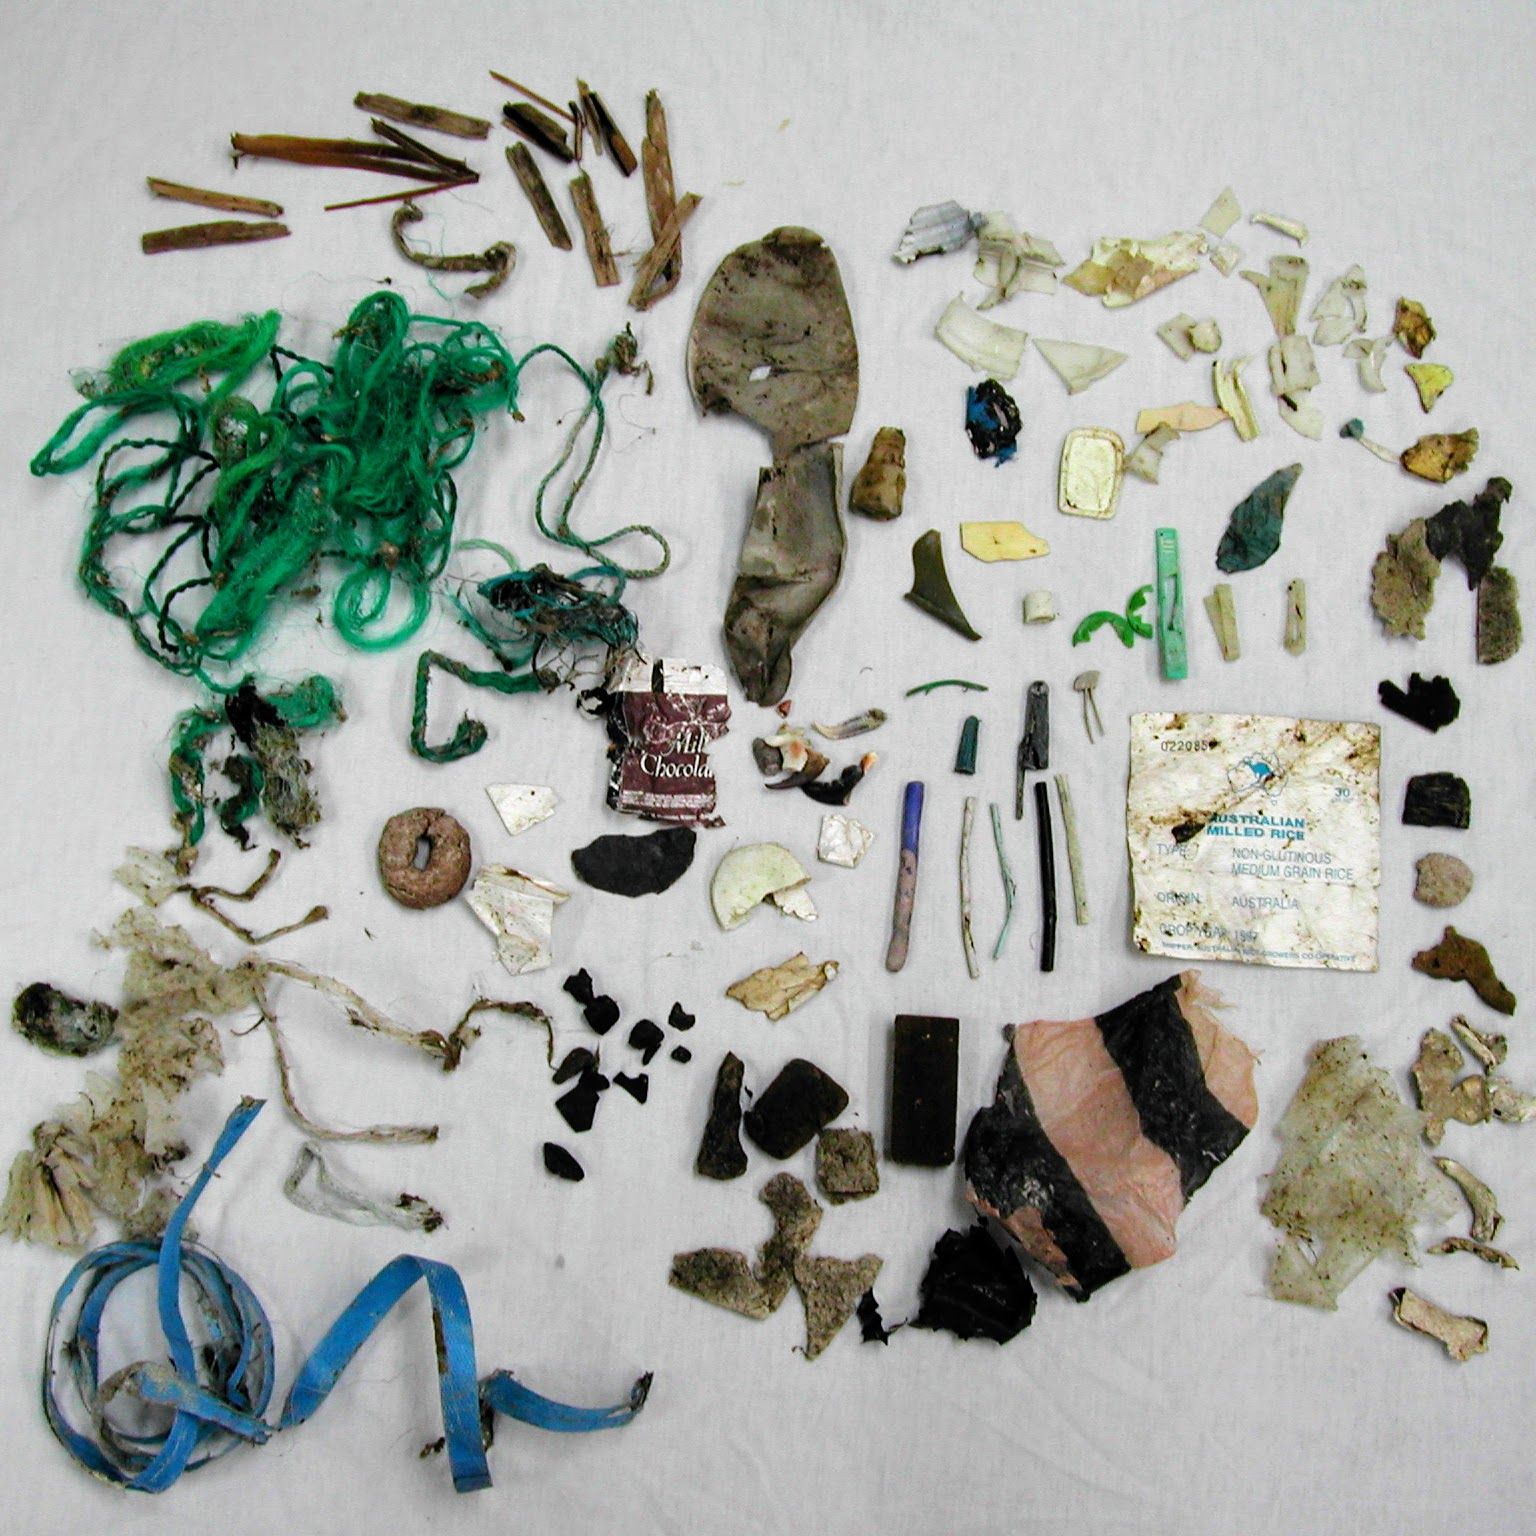 Assortment of fishing line, plastic trash, bones and shells removed from sea turtle's intestines